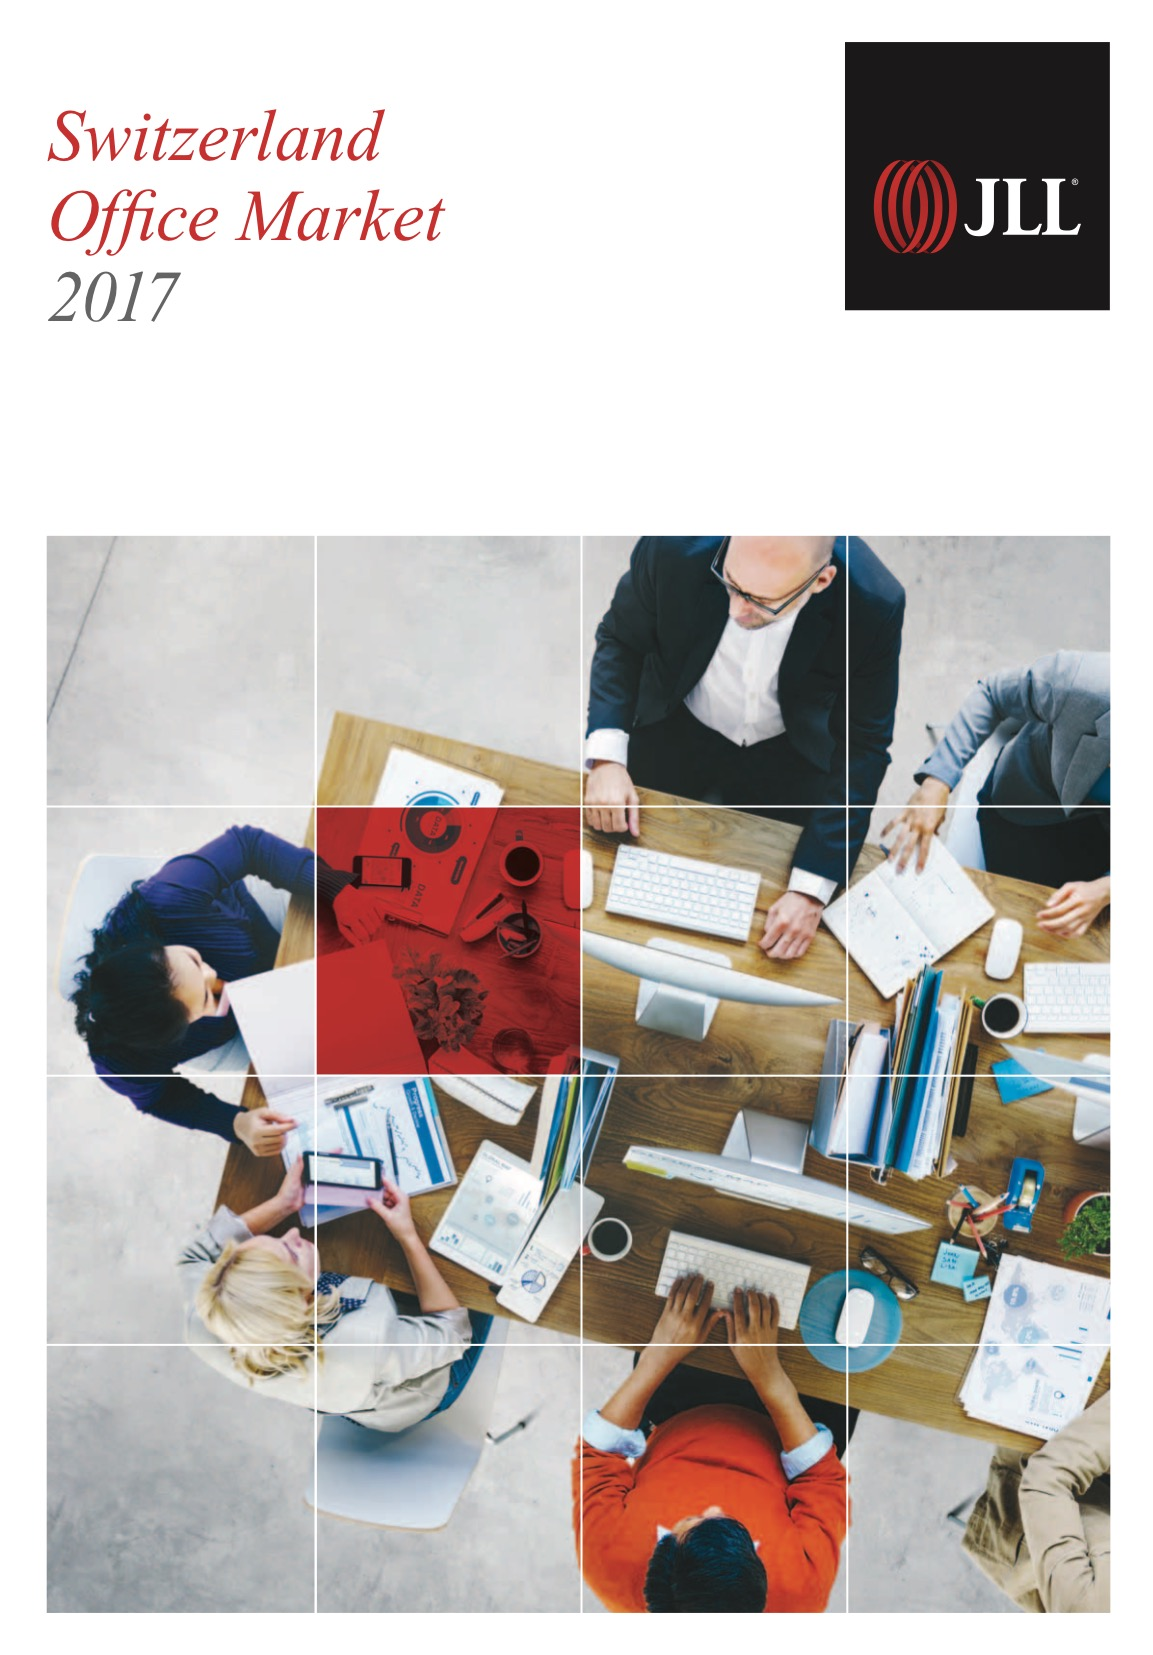 Switzerland Office Market 2017